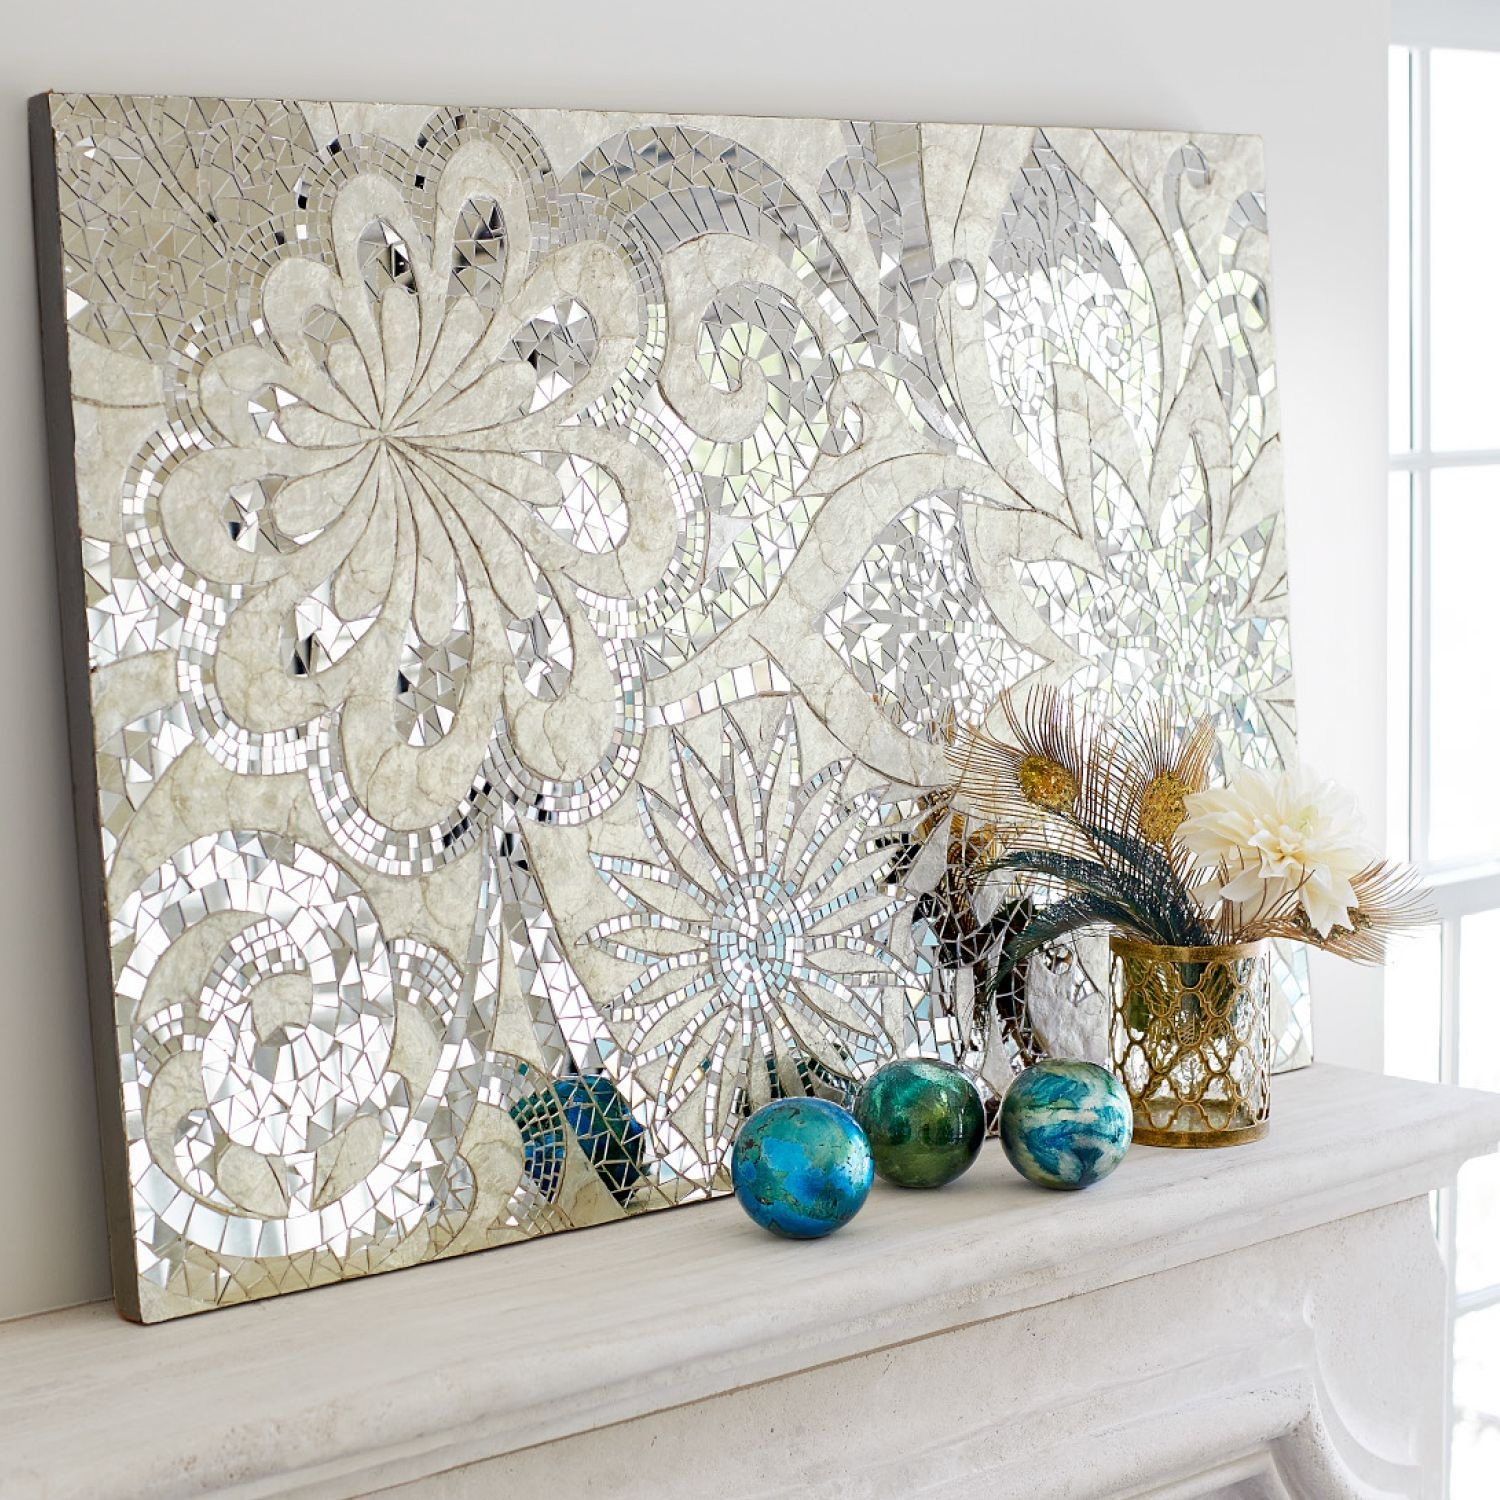 Floral Capiz Mosaic Wall Panel Pier 1 Imports Mosaic Wall Art Pier One Wall Art Mosaic Wall